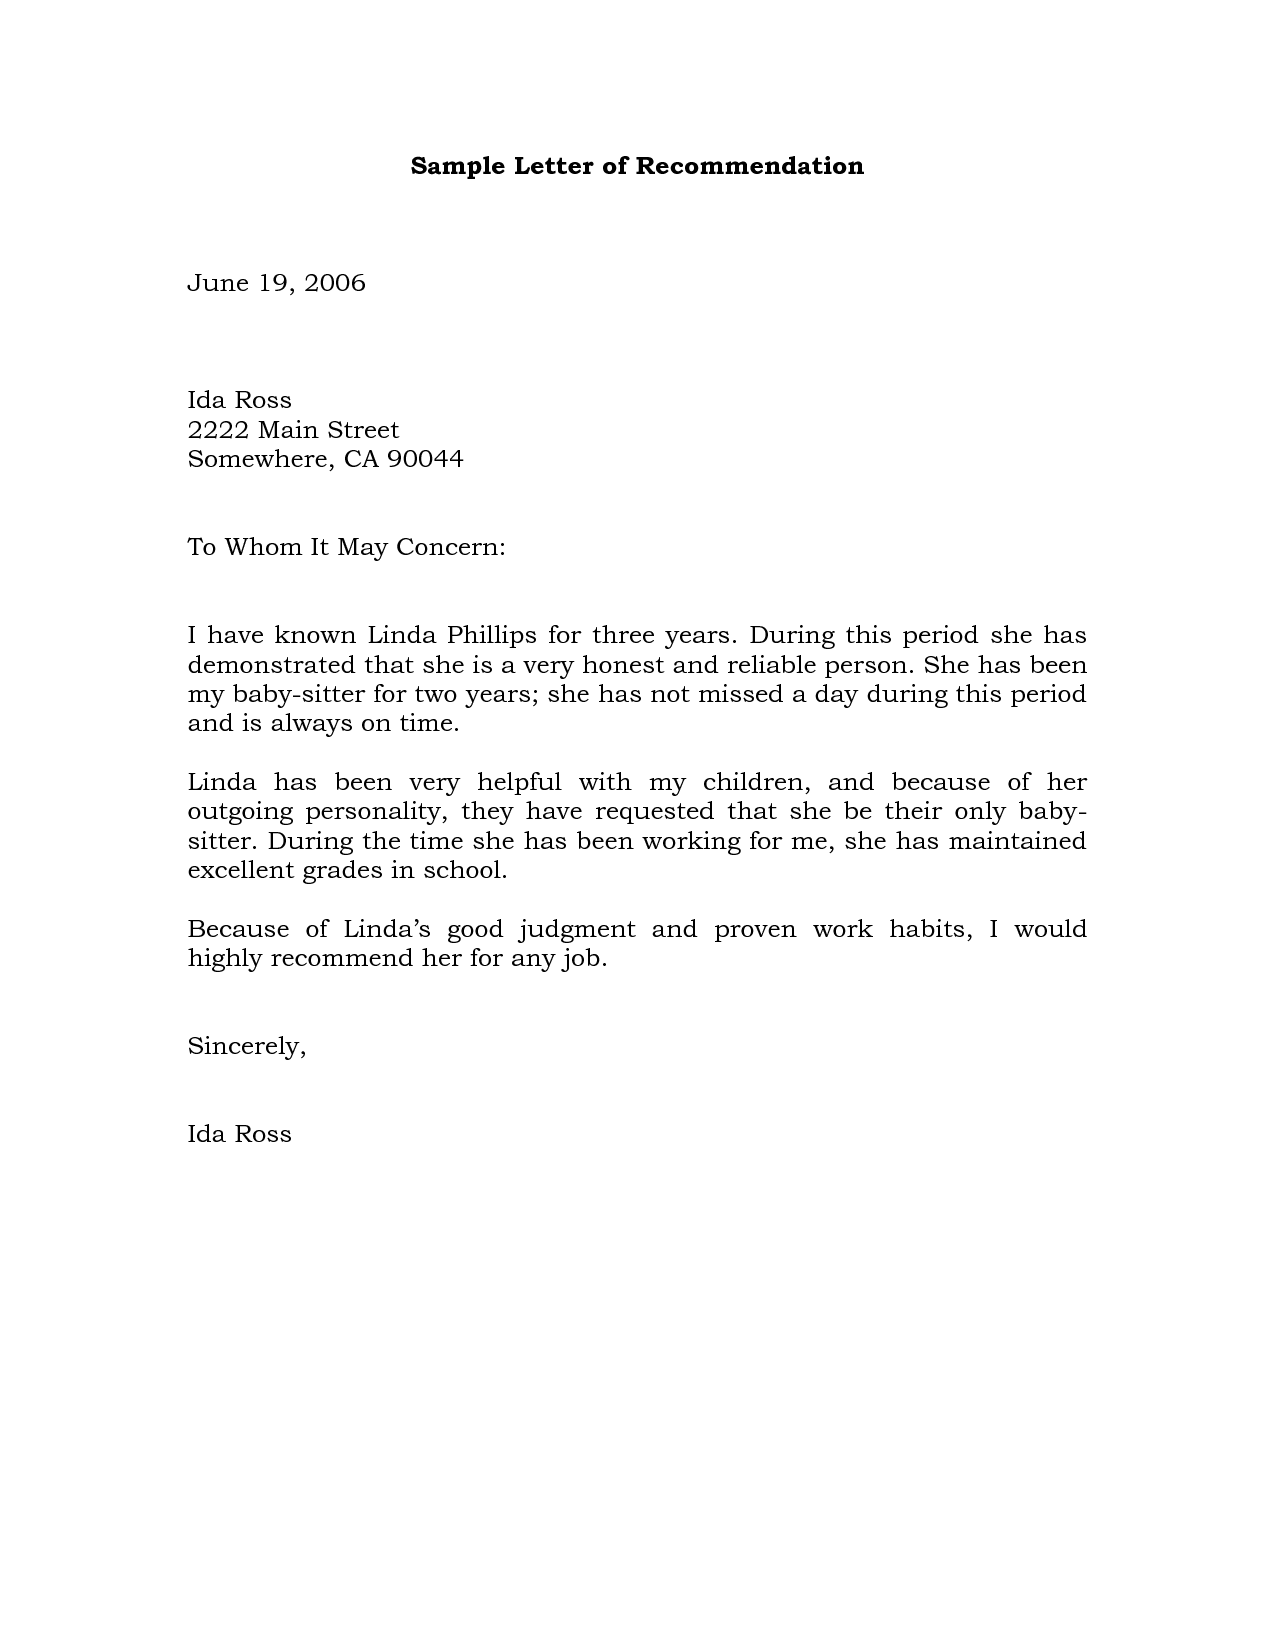 letters of recommendation samples - Bing Images | Things I Like ...